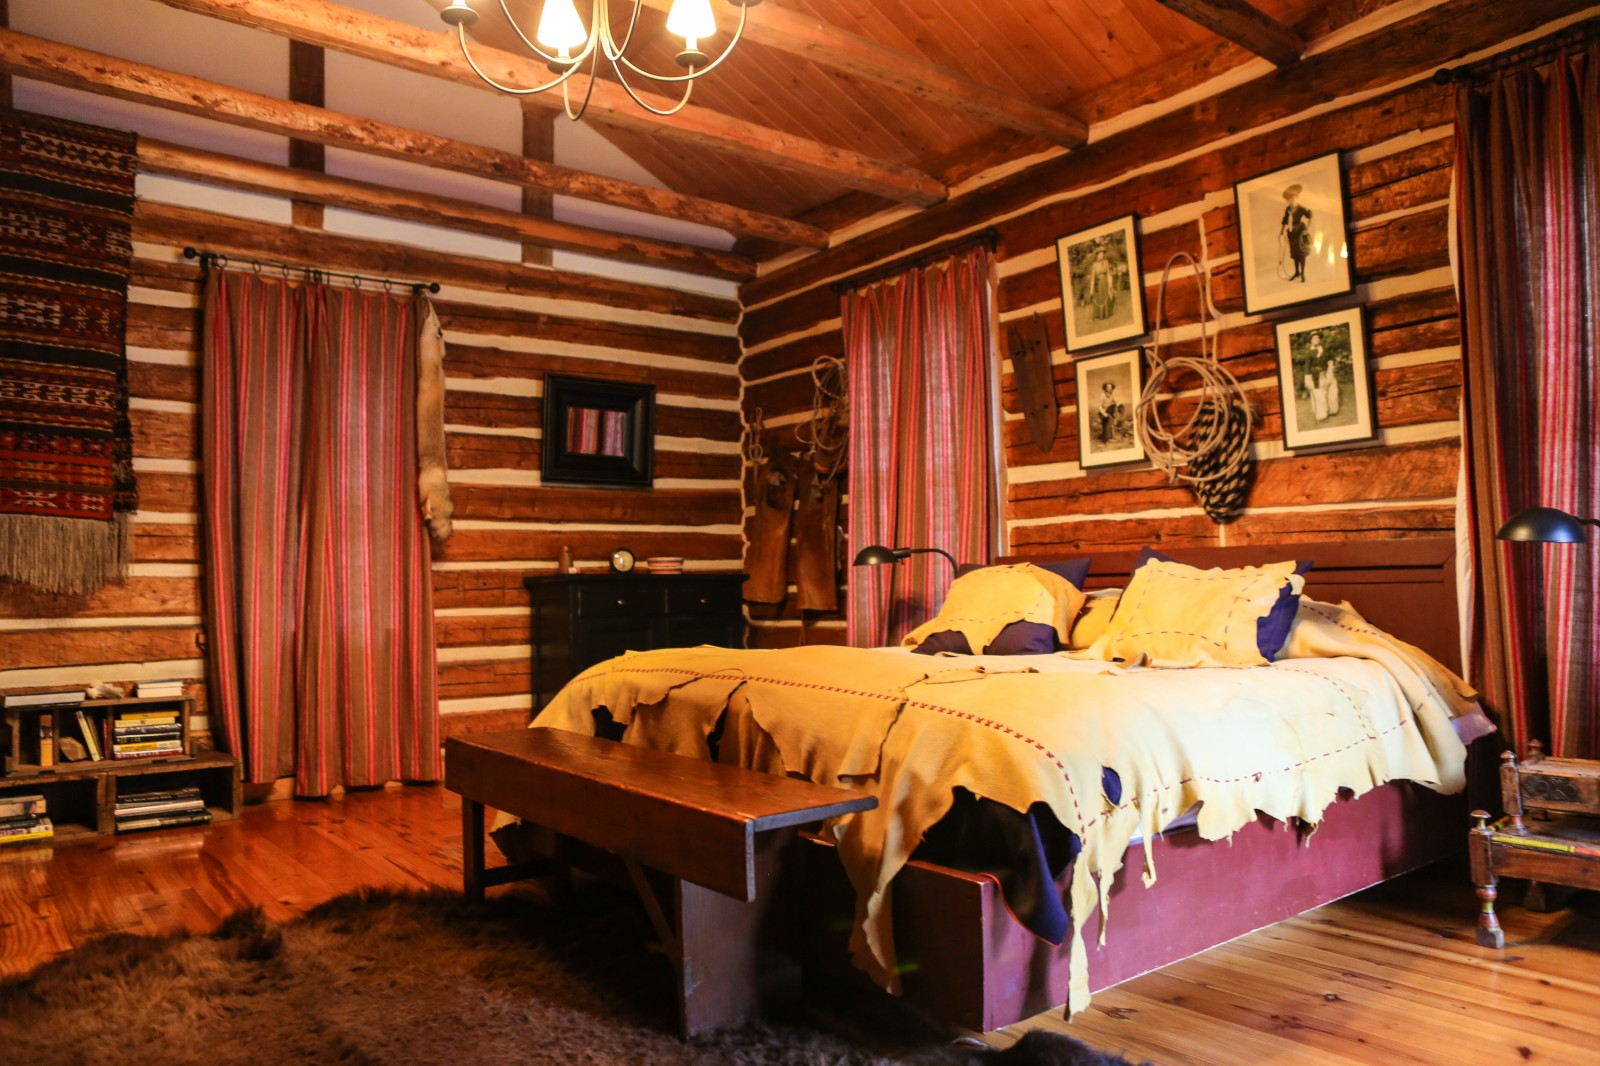 10 Charming Decorating Ideas For A Cabin -Room & Bath